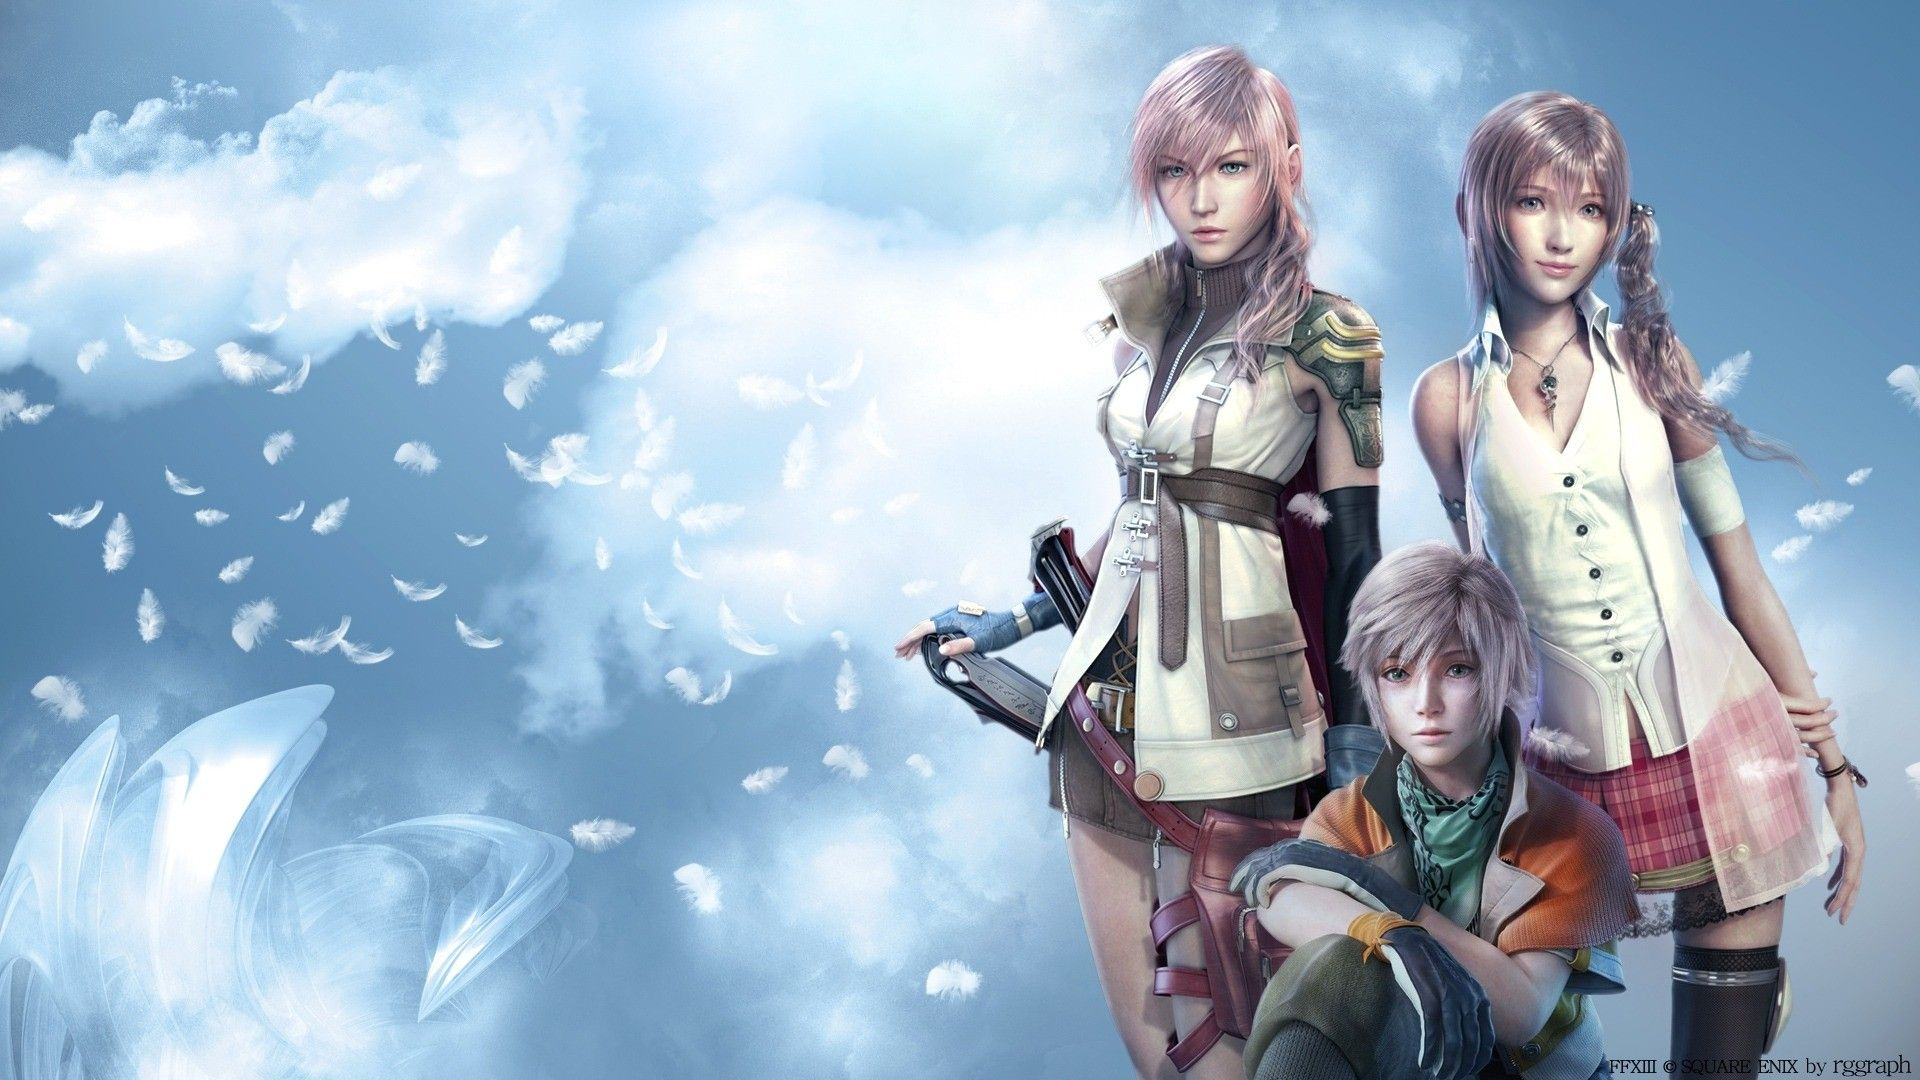 Final Fantasy Xiii Wallpaper 1920x1080 High Resolution Final Fantasy Wallpaper Hd Final Fantasy Xv Wallpapers Final Fantasy